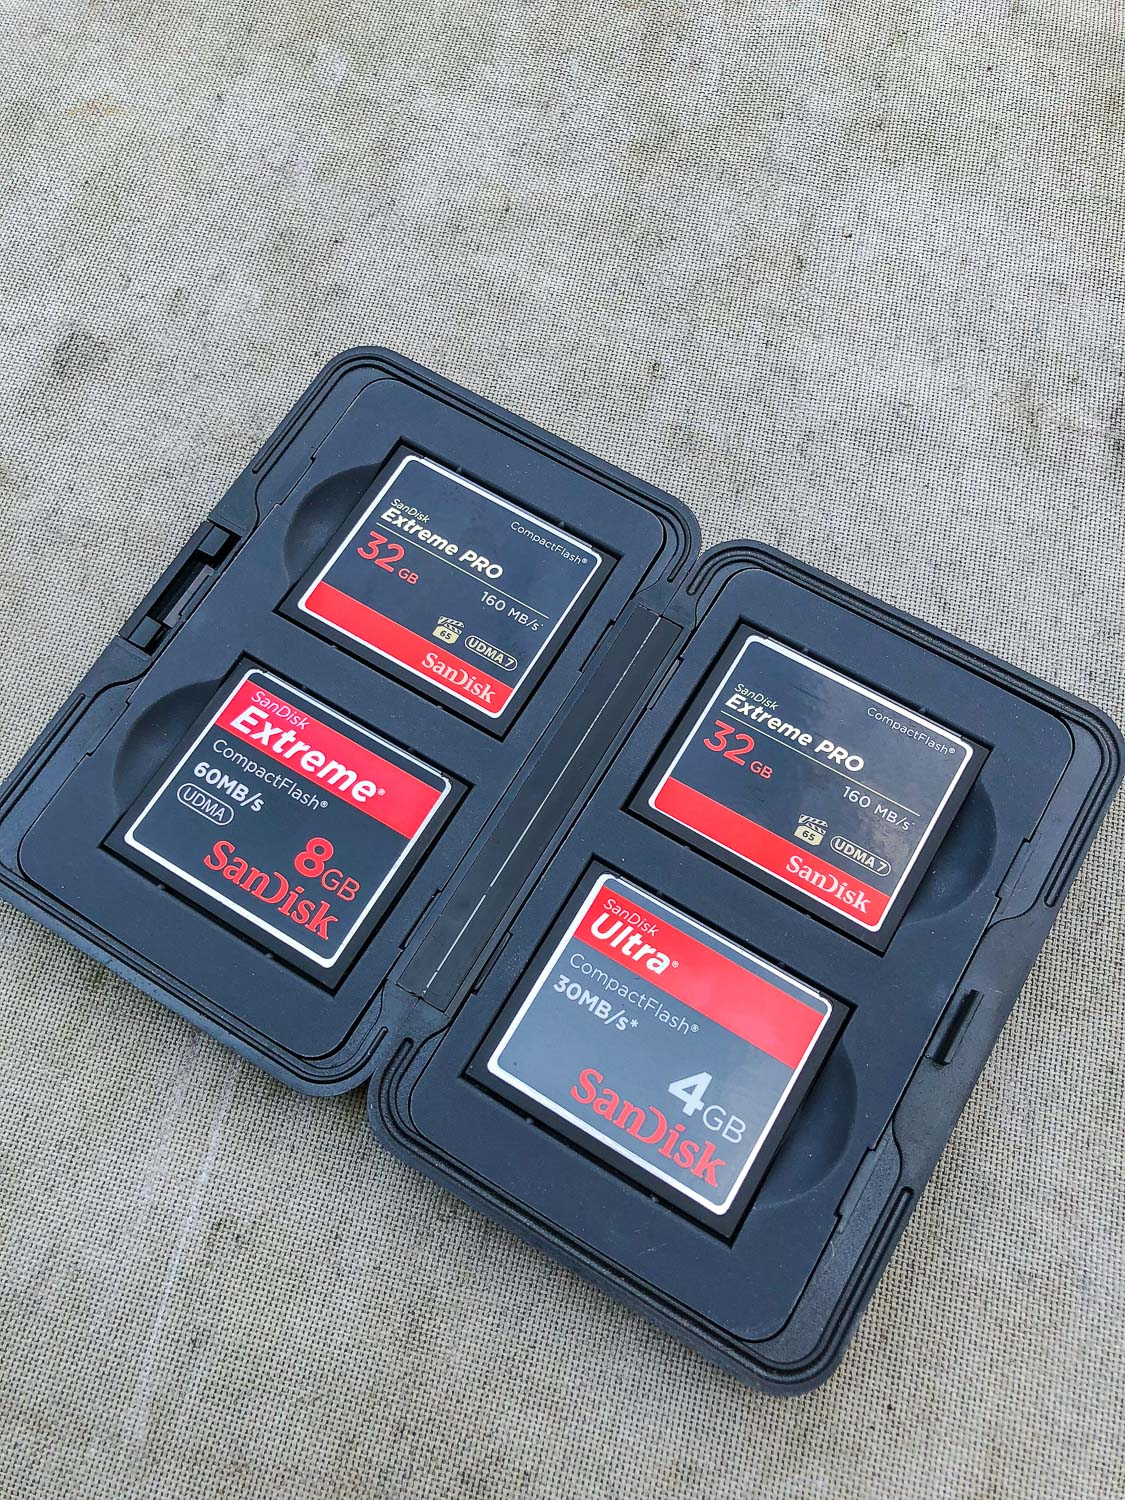 CF memory cards in a case - The First 10 Things You Need to Buy After Your Camera for Travel Photography